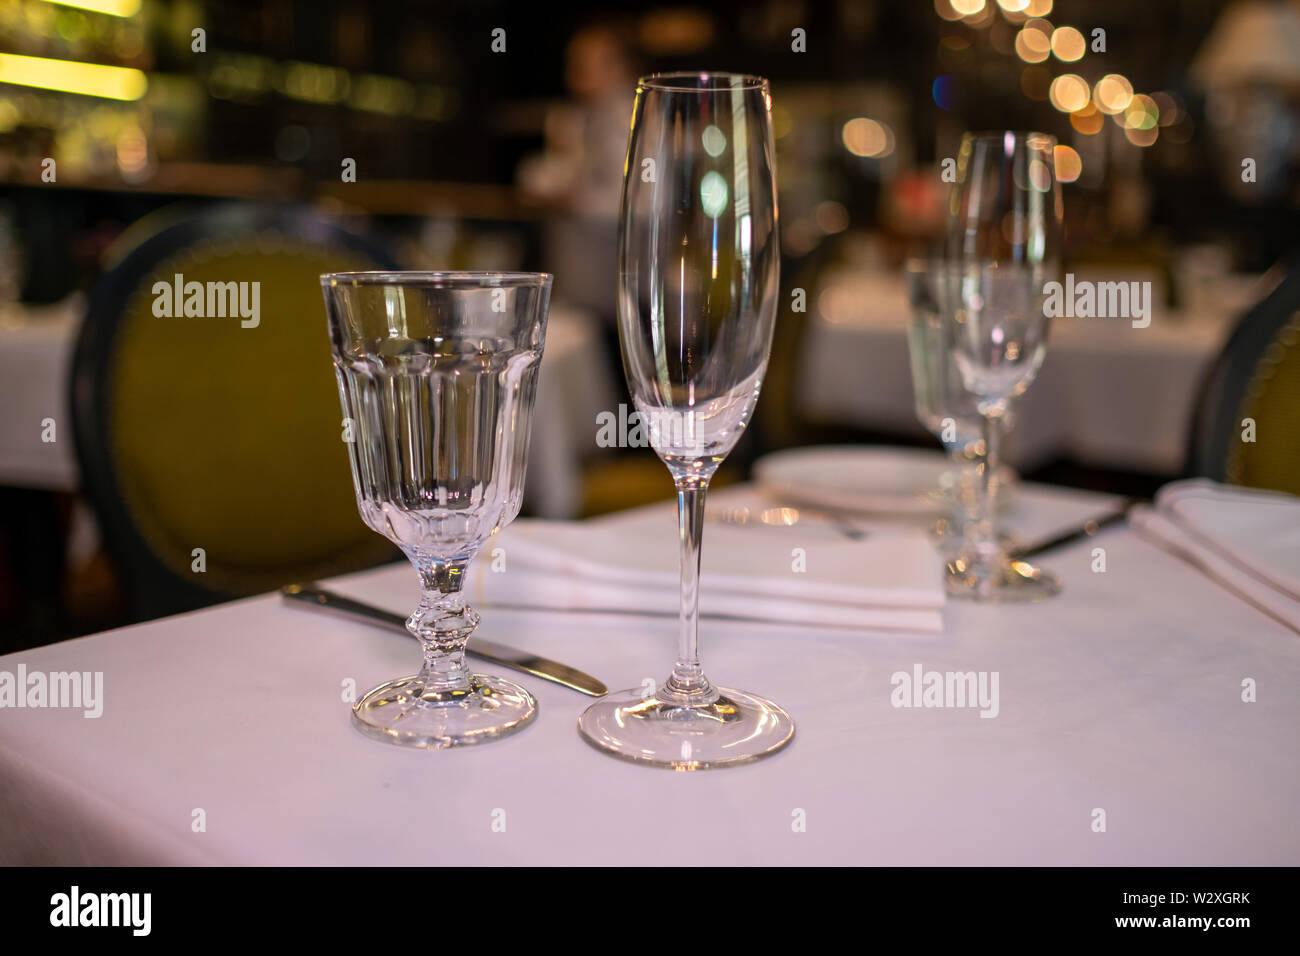 Natural light or daylight shot of modern restaurant table set for a lunch. Shallow focus on wine glass. Empty glasses set in restaurant. Close up phot - Stock Image